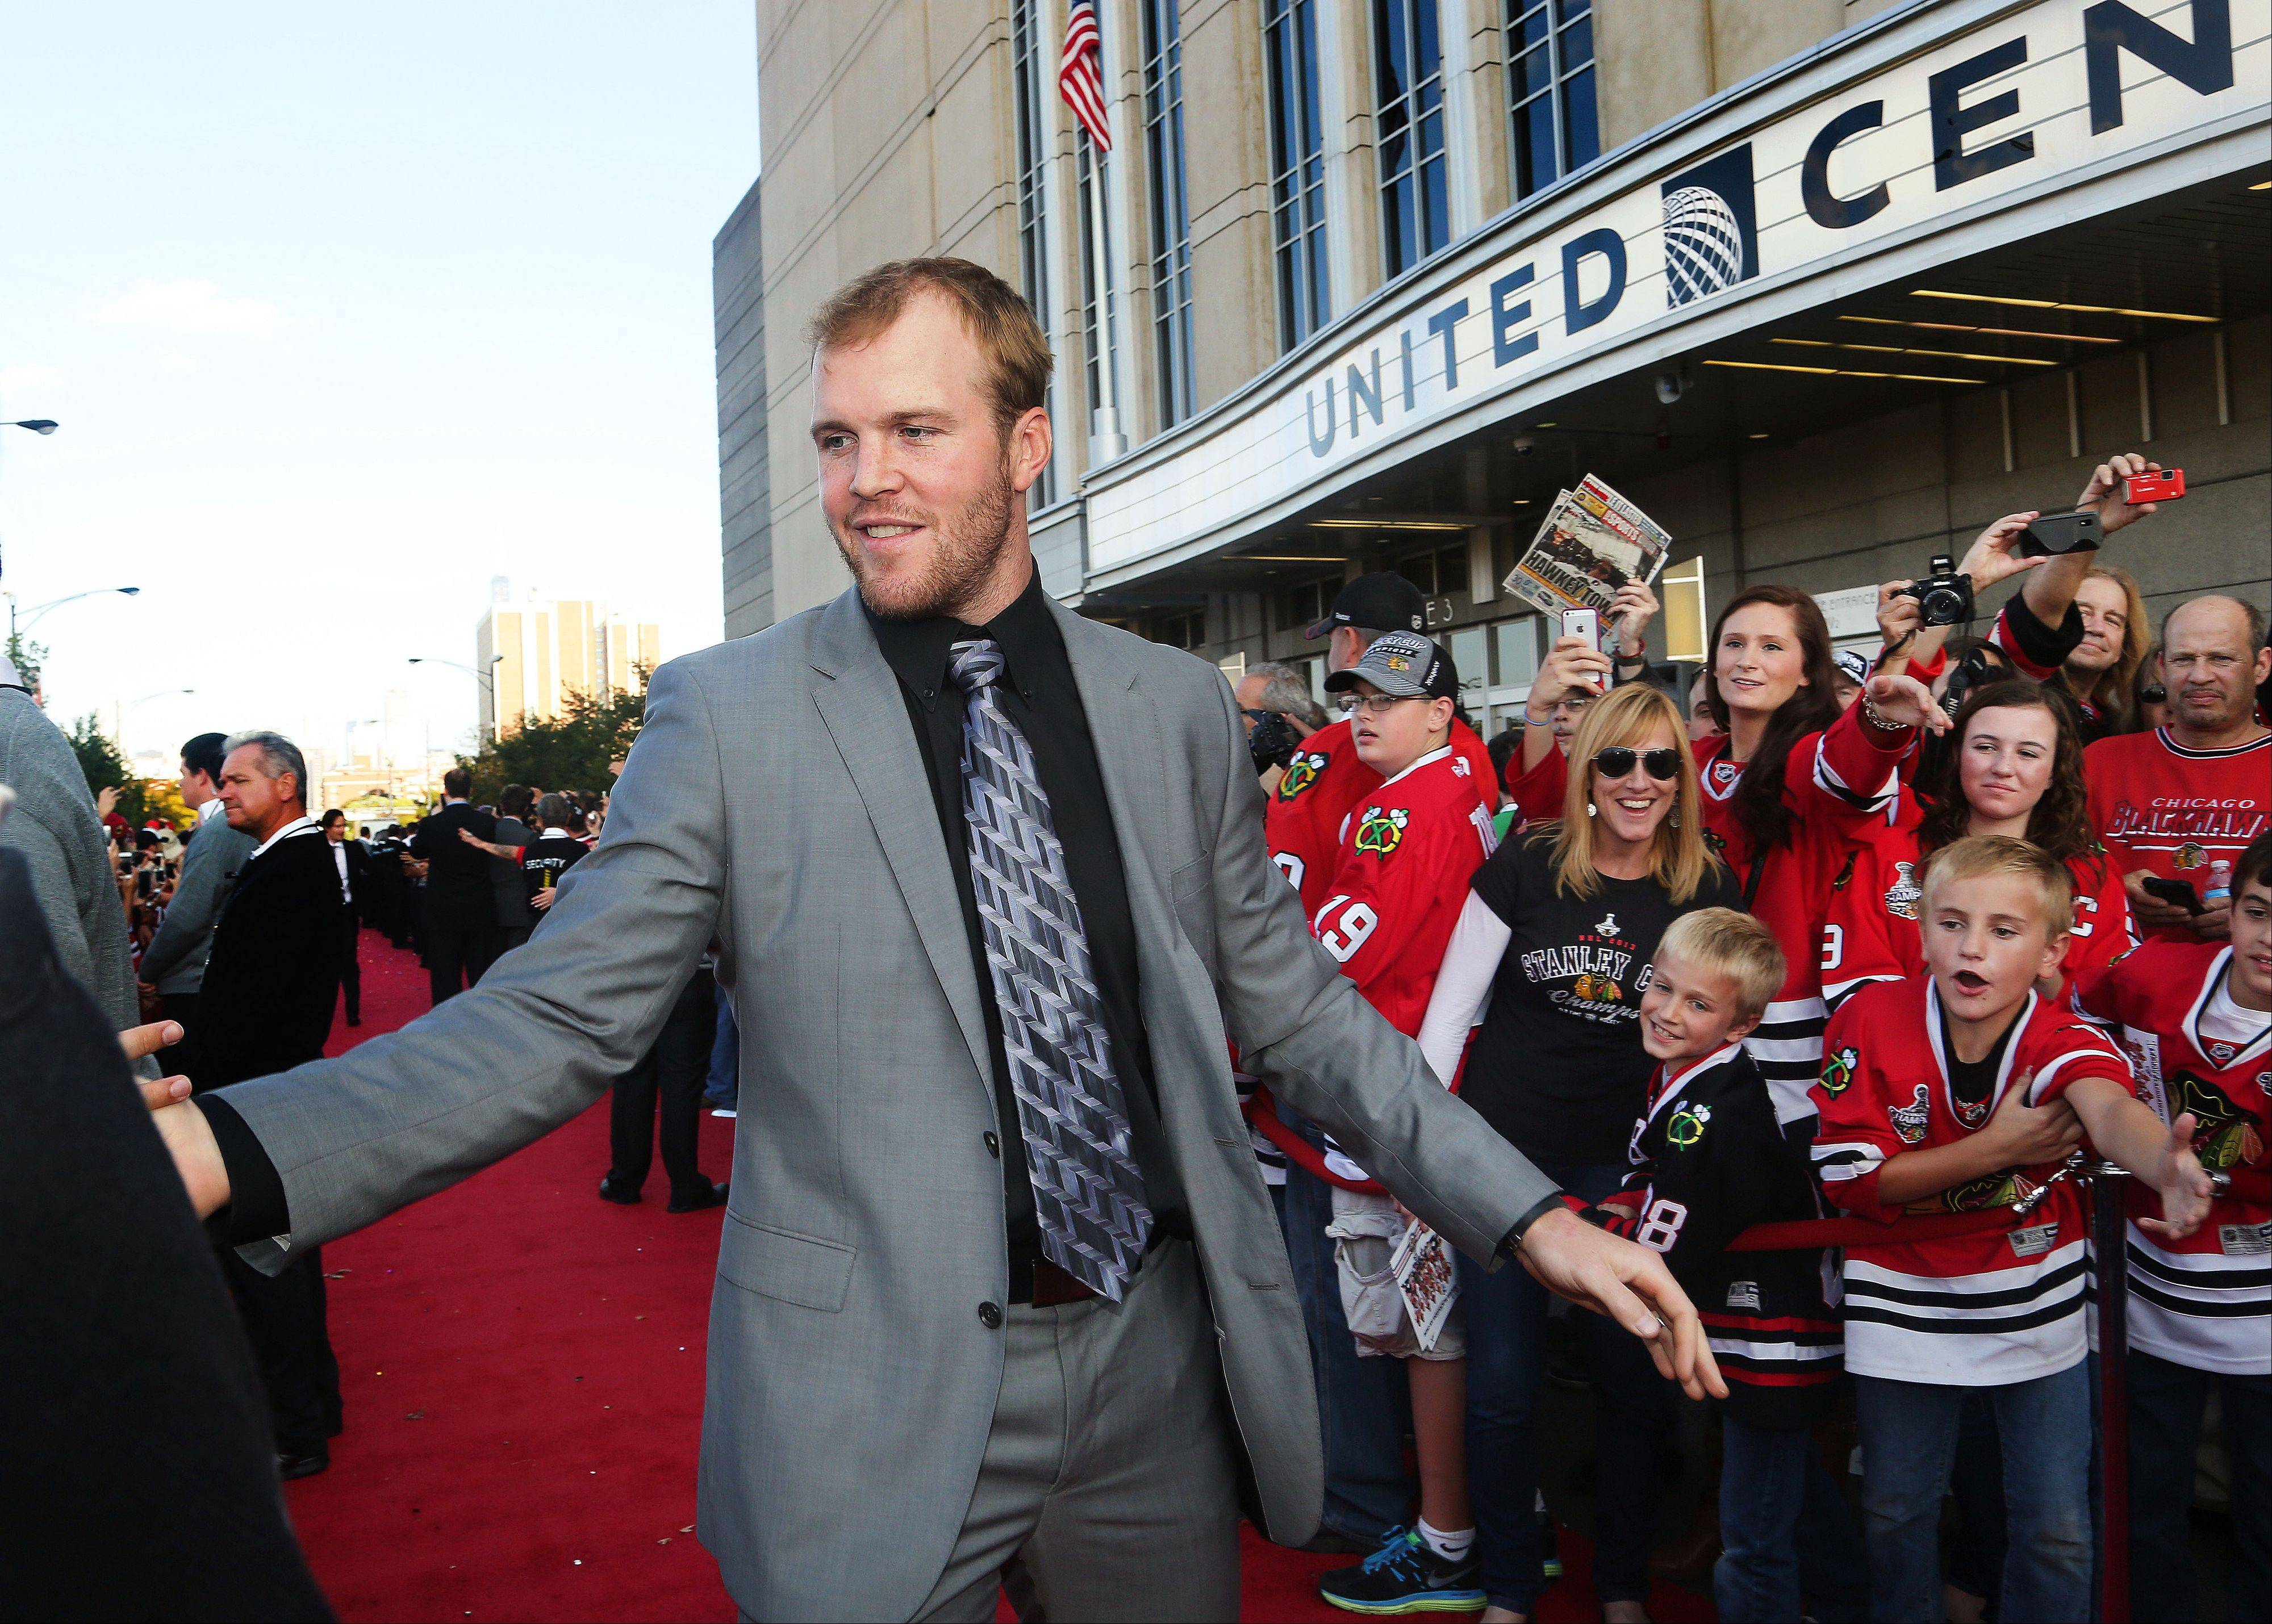 Chicago Blackhawks Bryan Bickell high-fives fans.